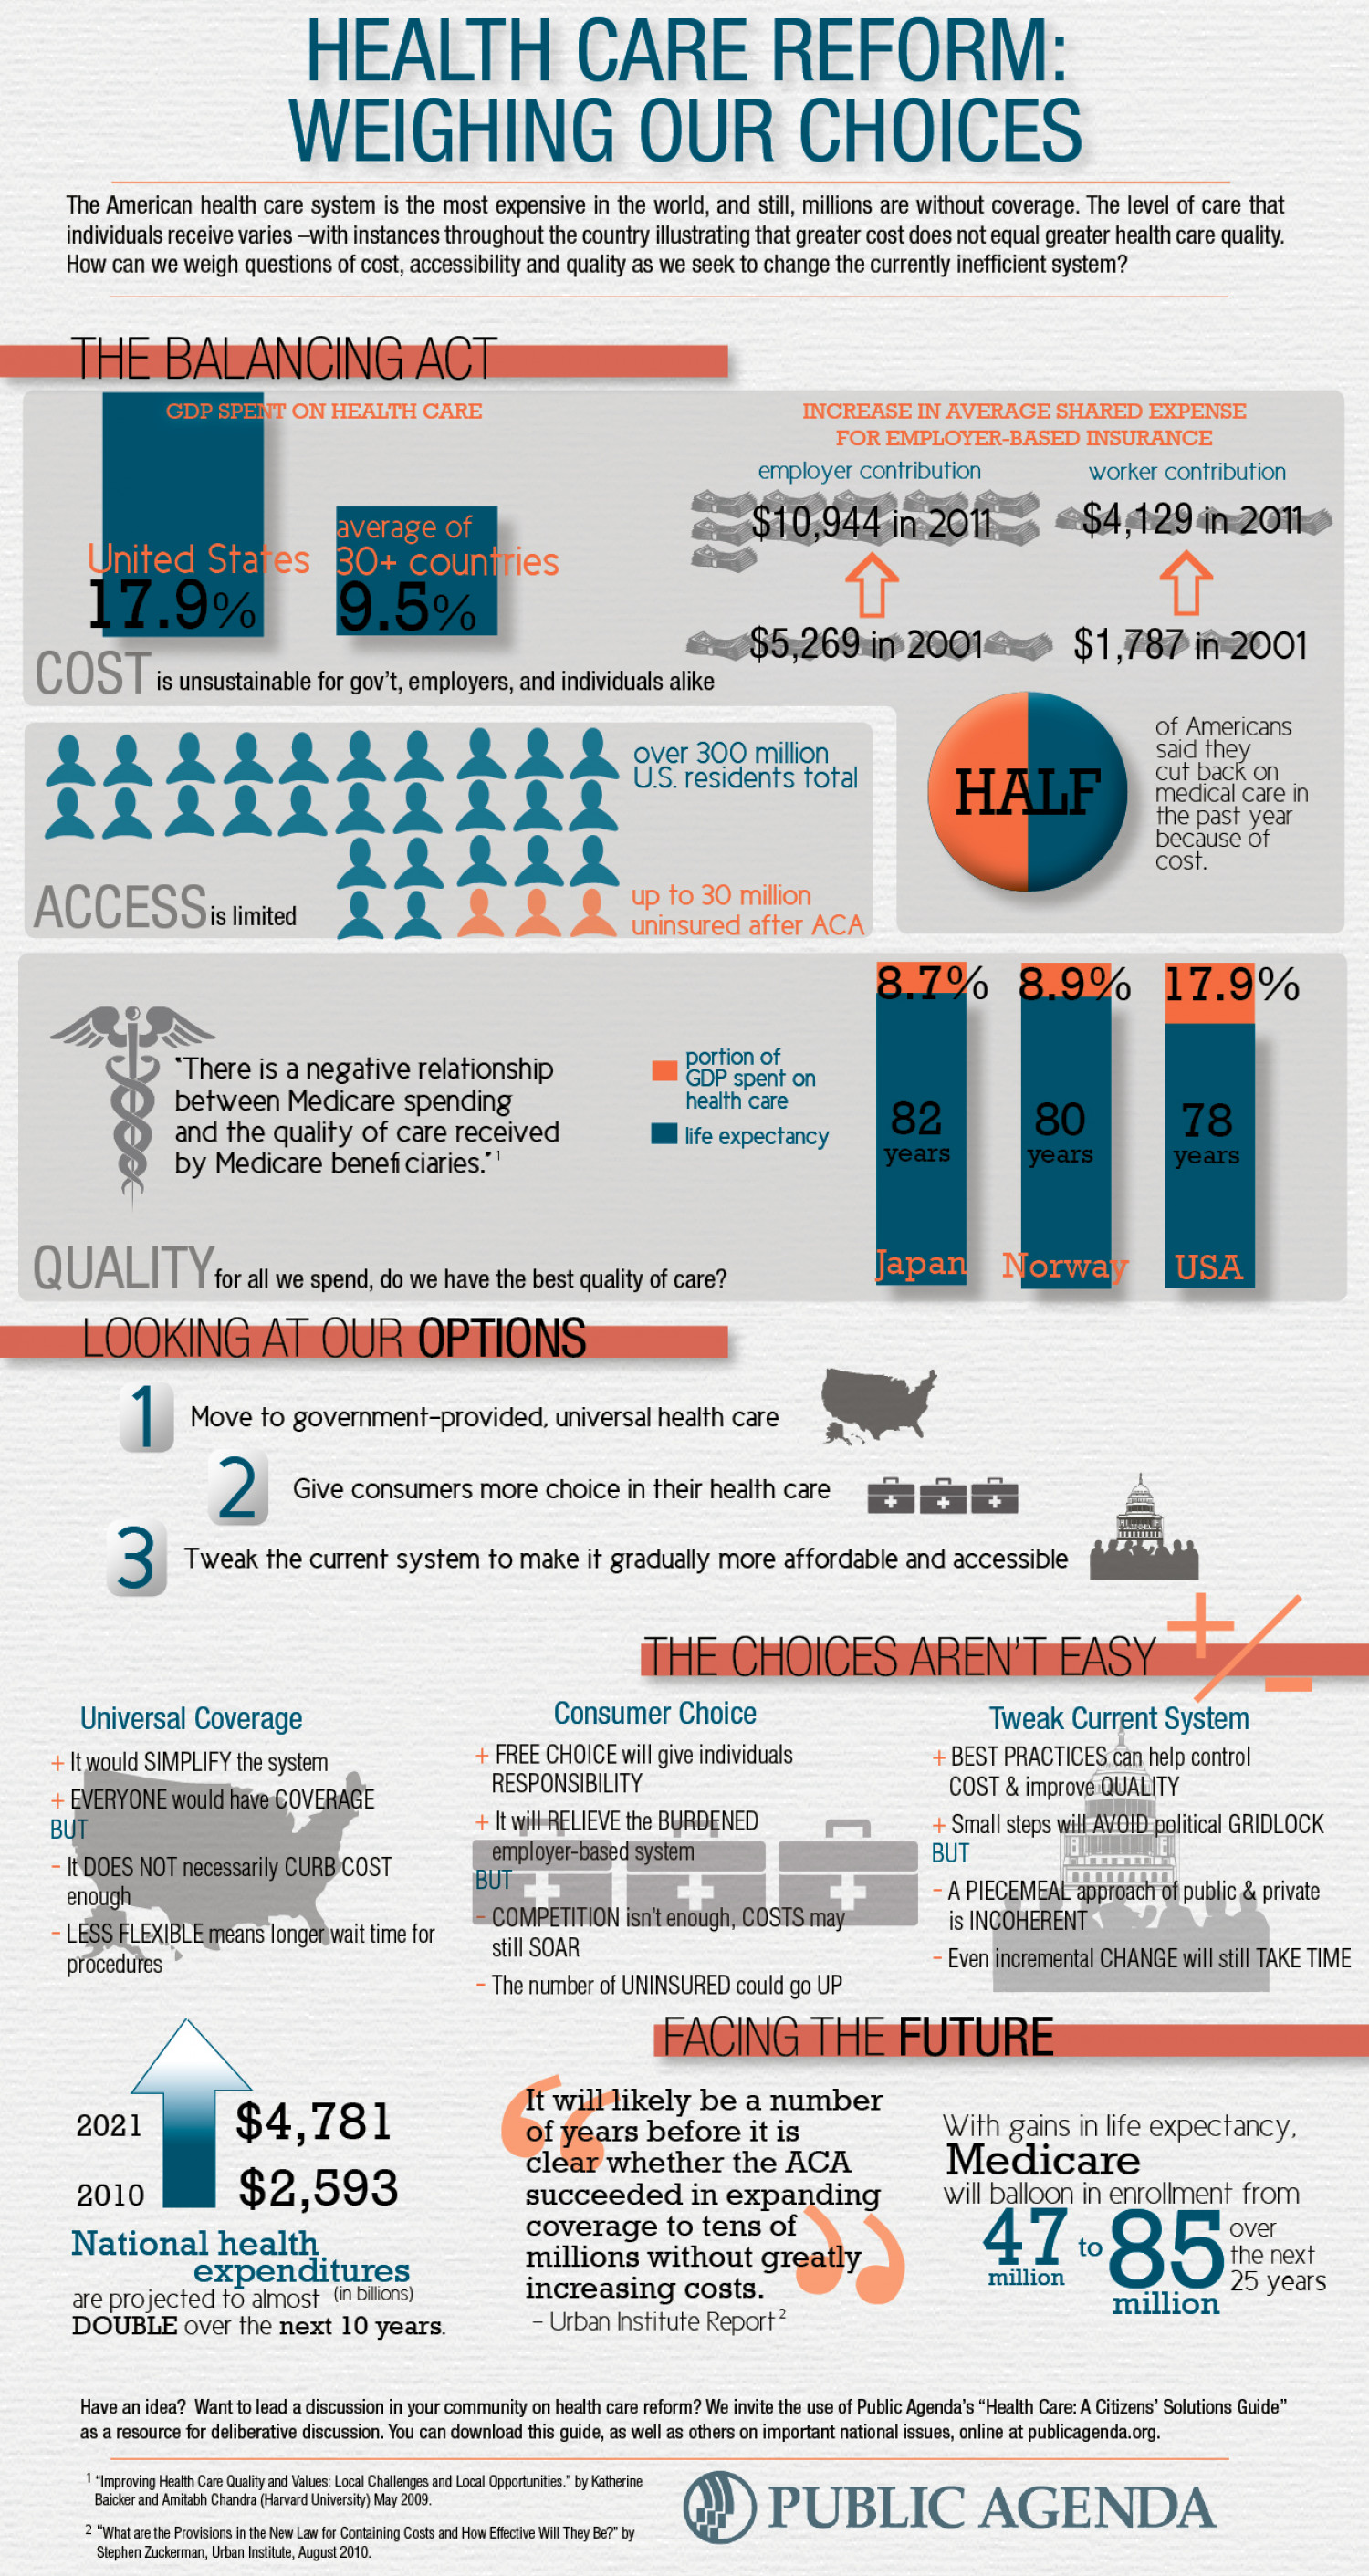 Health Care Reform: Weighing Our Choices Infographic